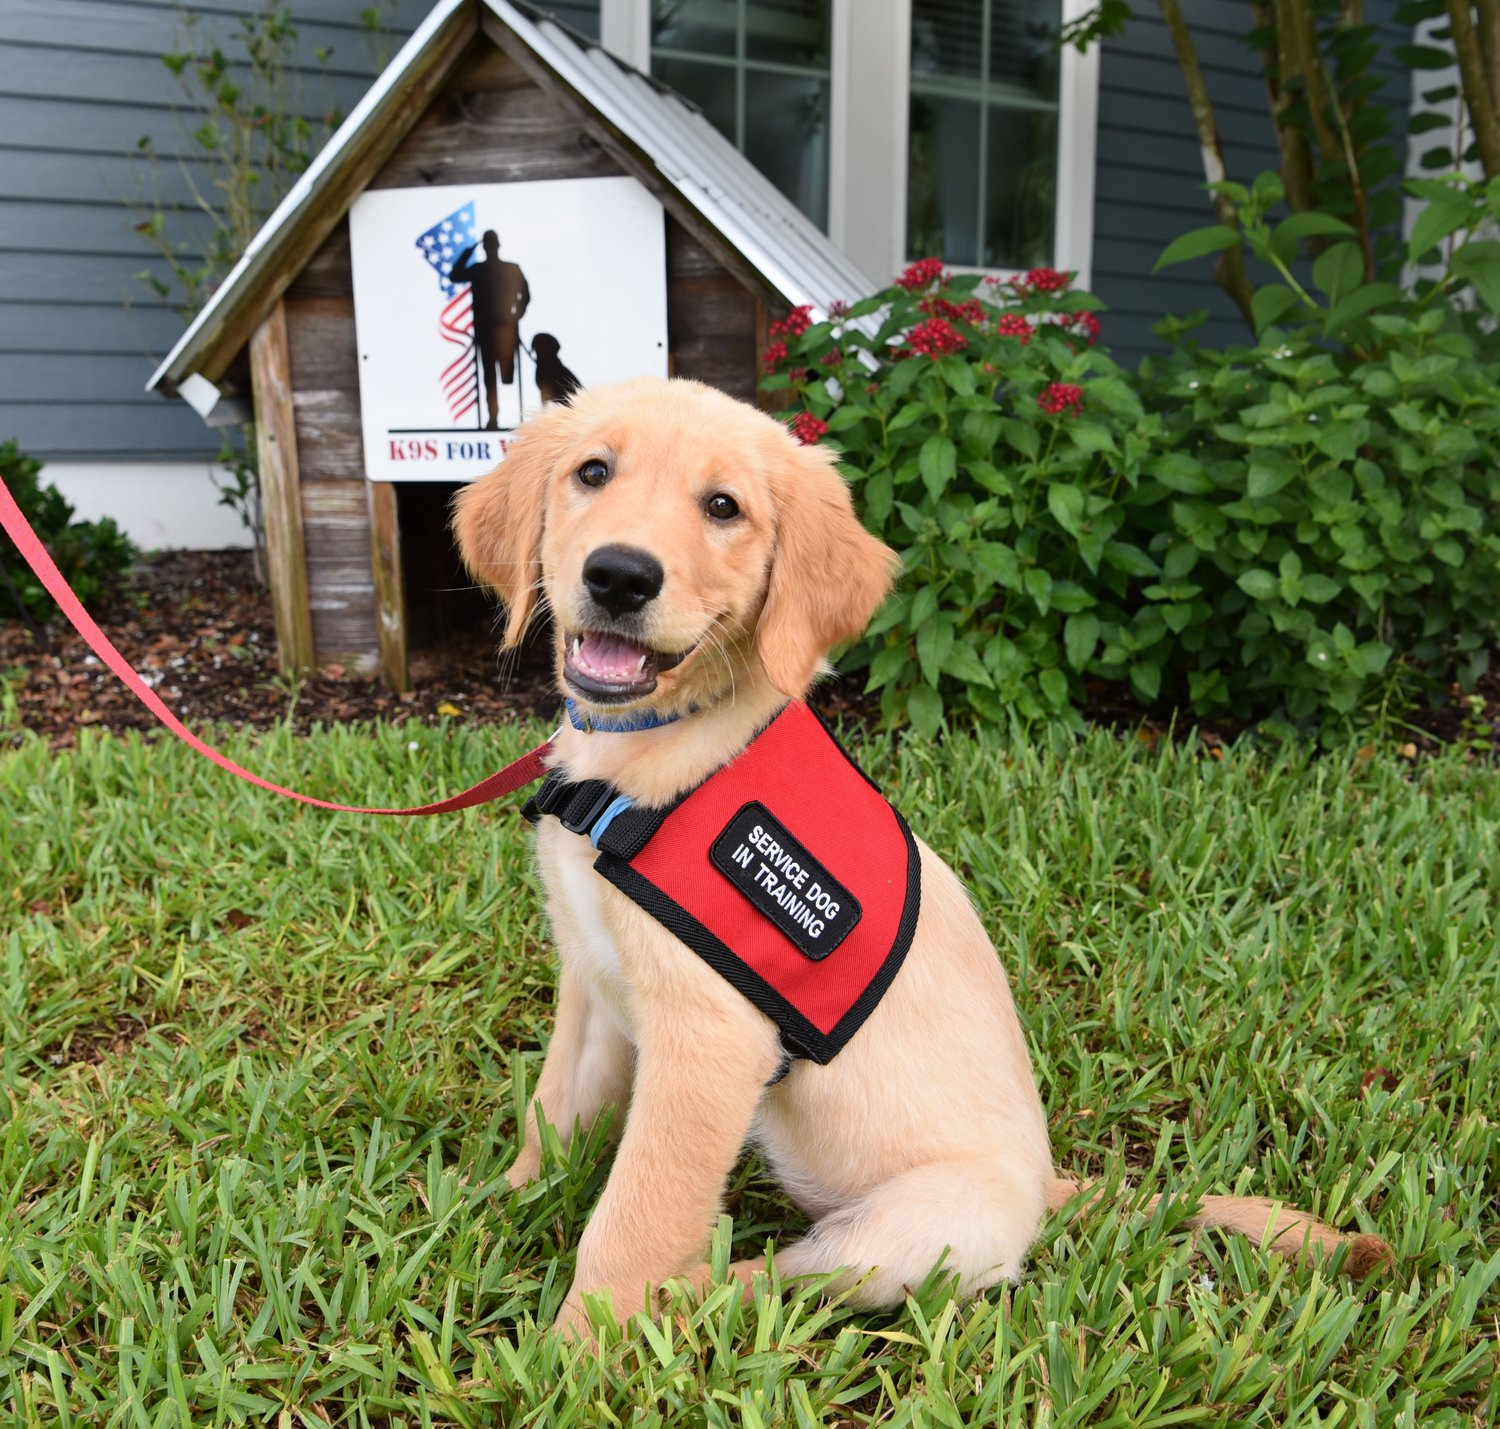 K9s for Warriors is looking for puppy raisers in the area to help get dogs ready to pair with veterans.